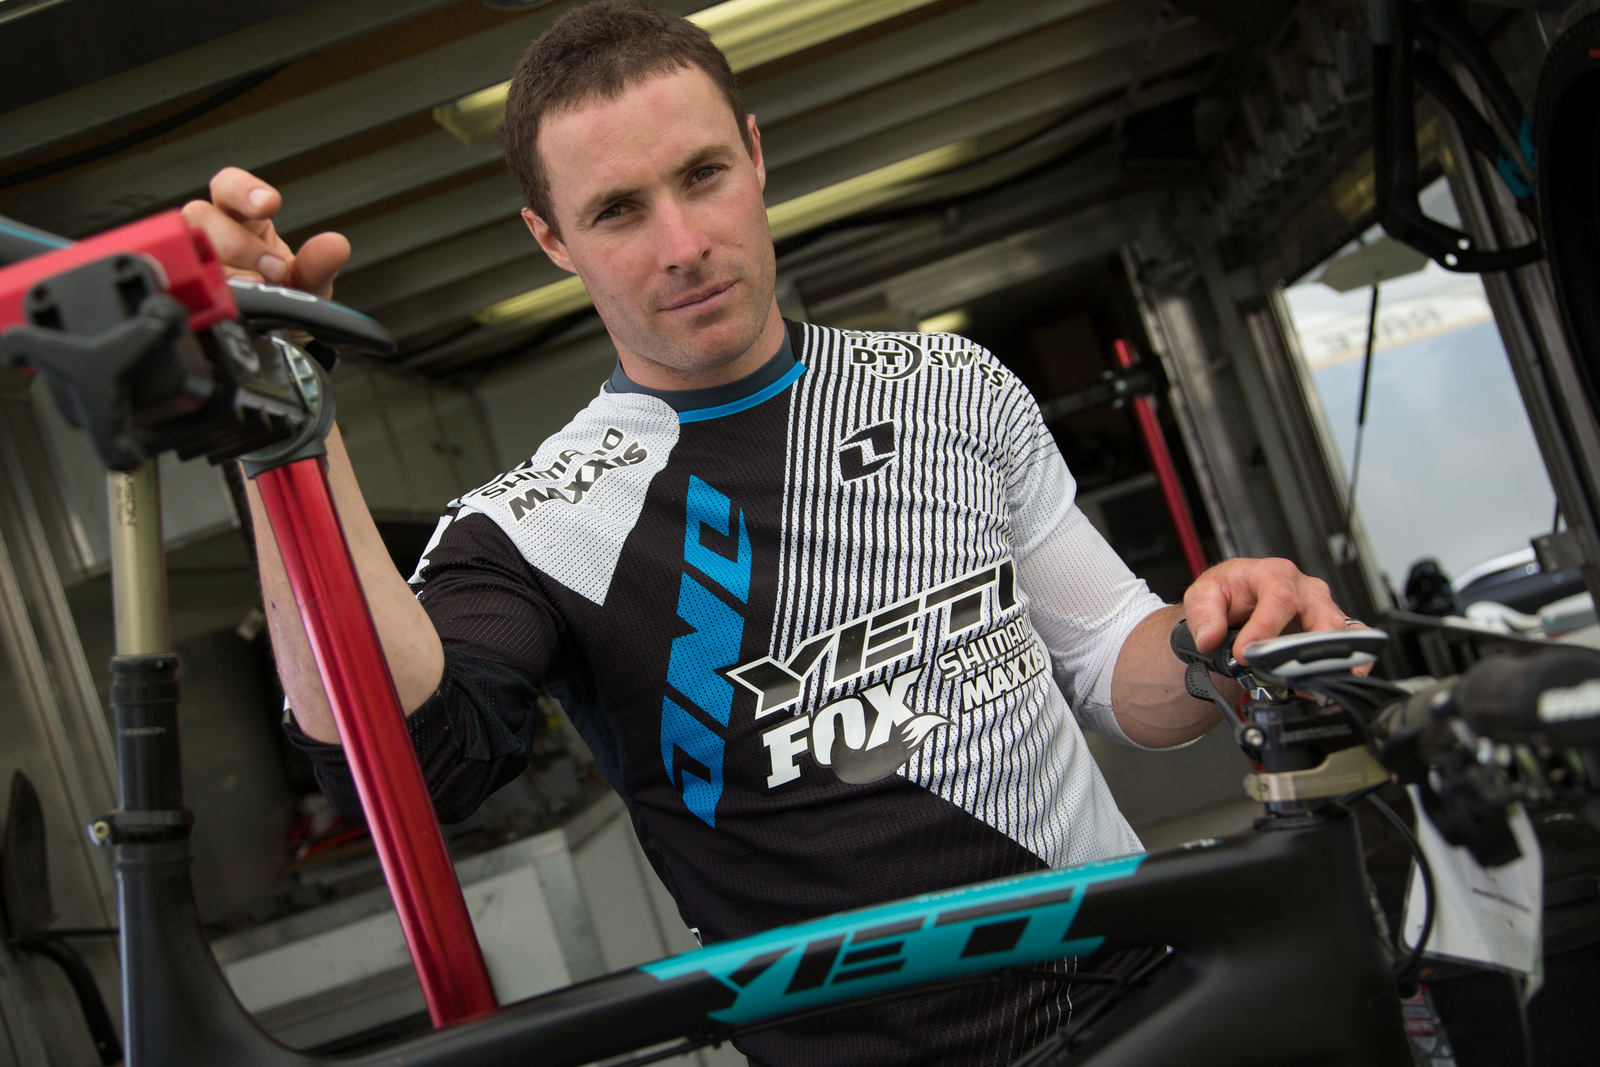 Jared Graves in Winter Park Enduro World Series Race